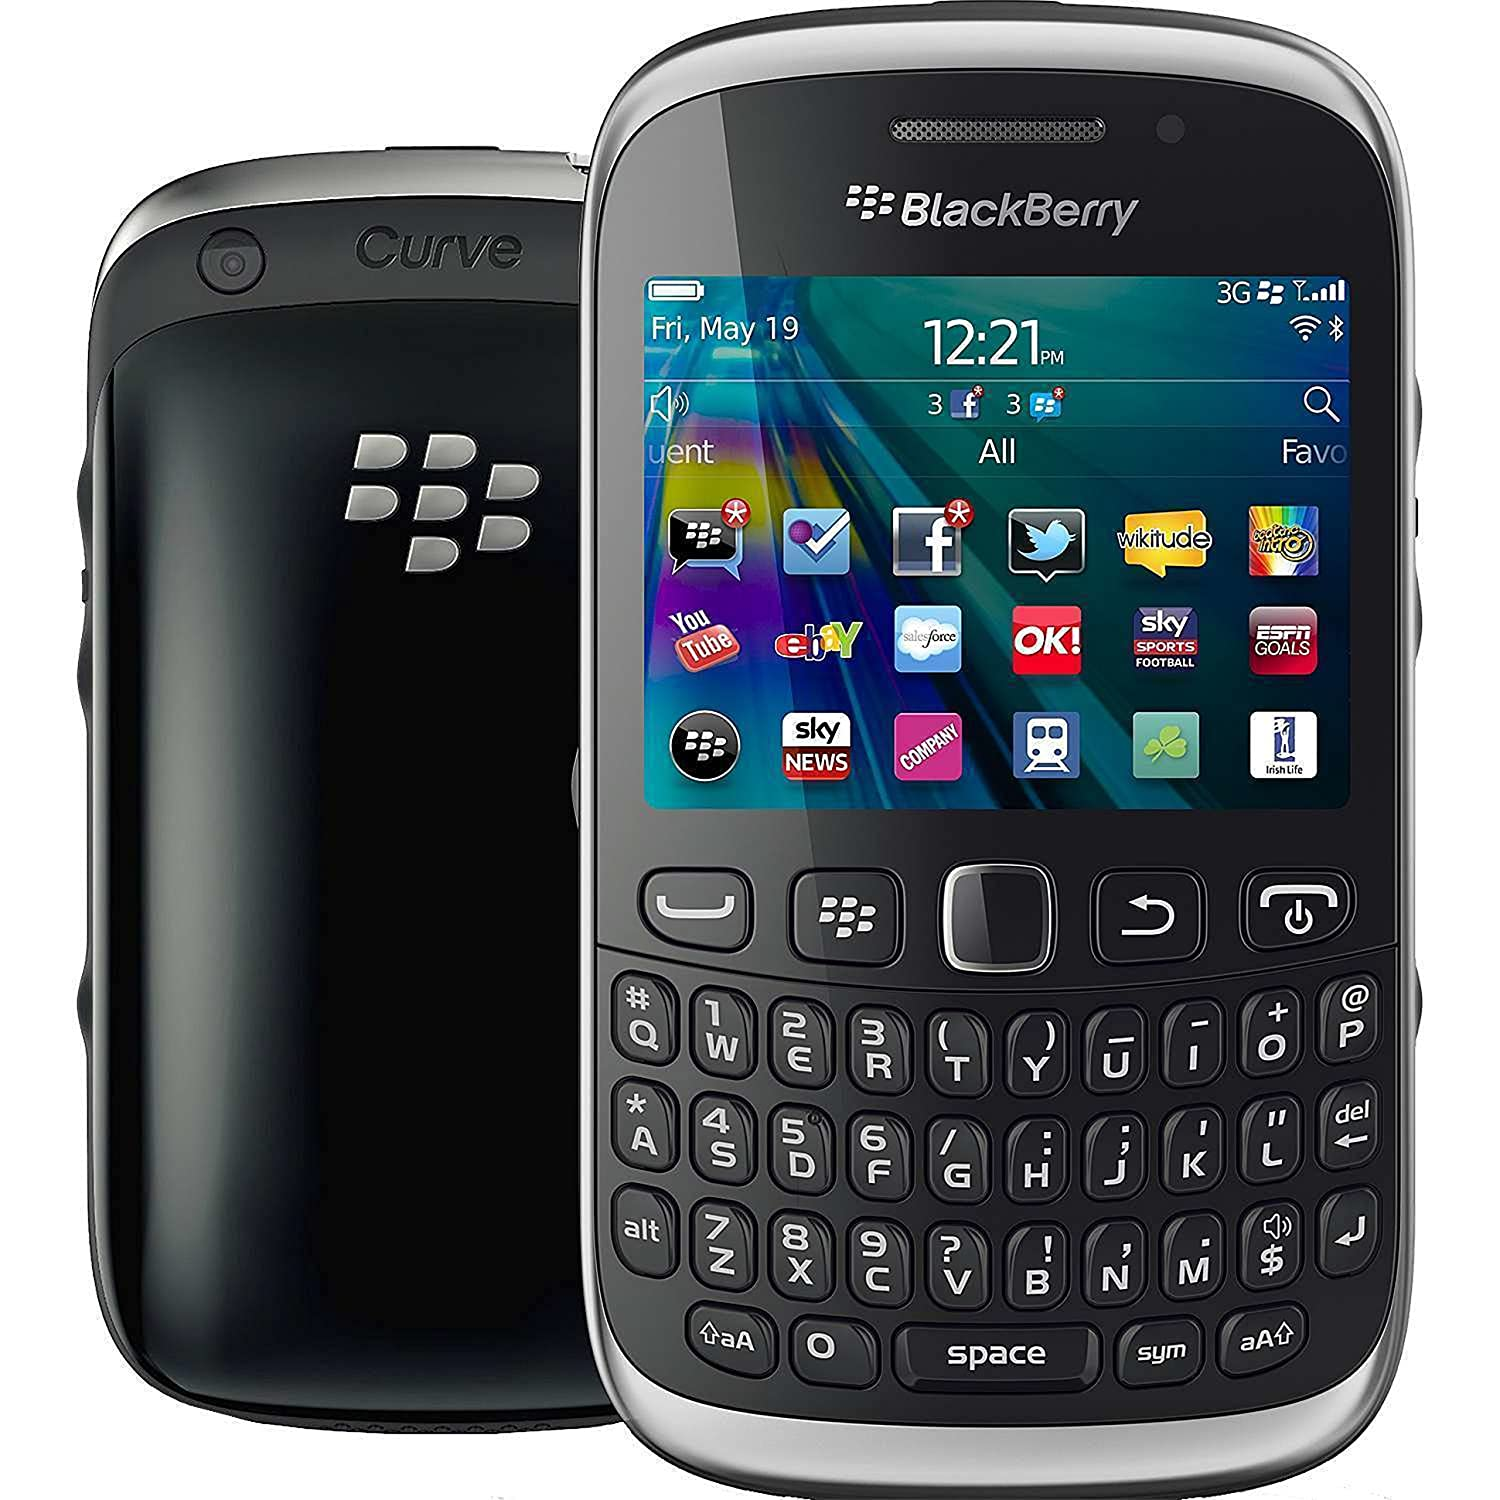 Q10 TÉLÉCHARGER AUTOLOADER BLACKBERRY